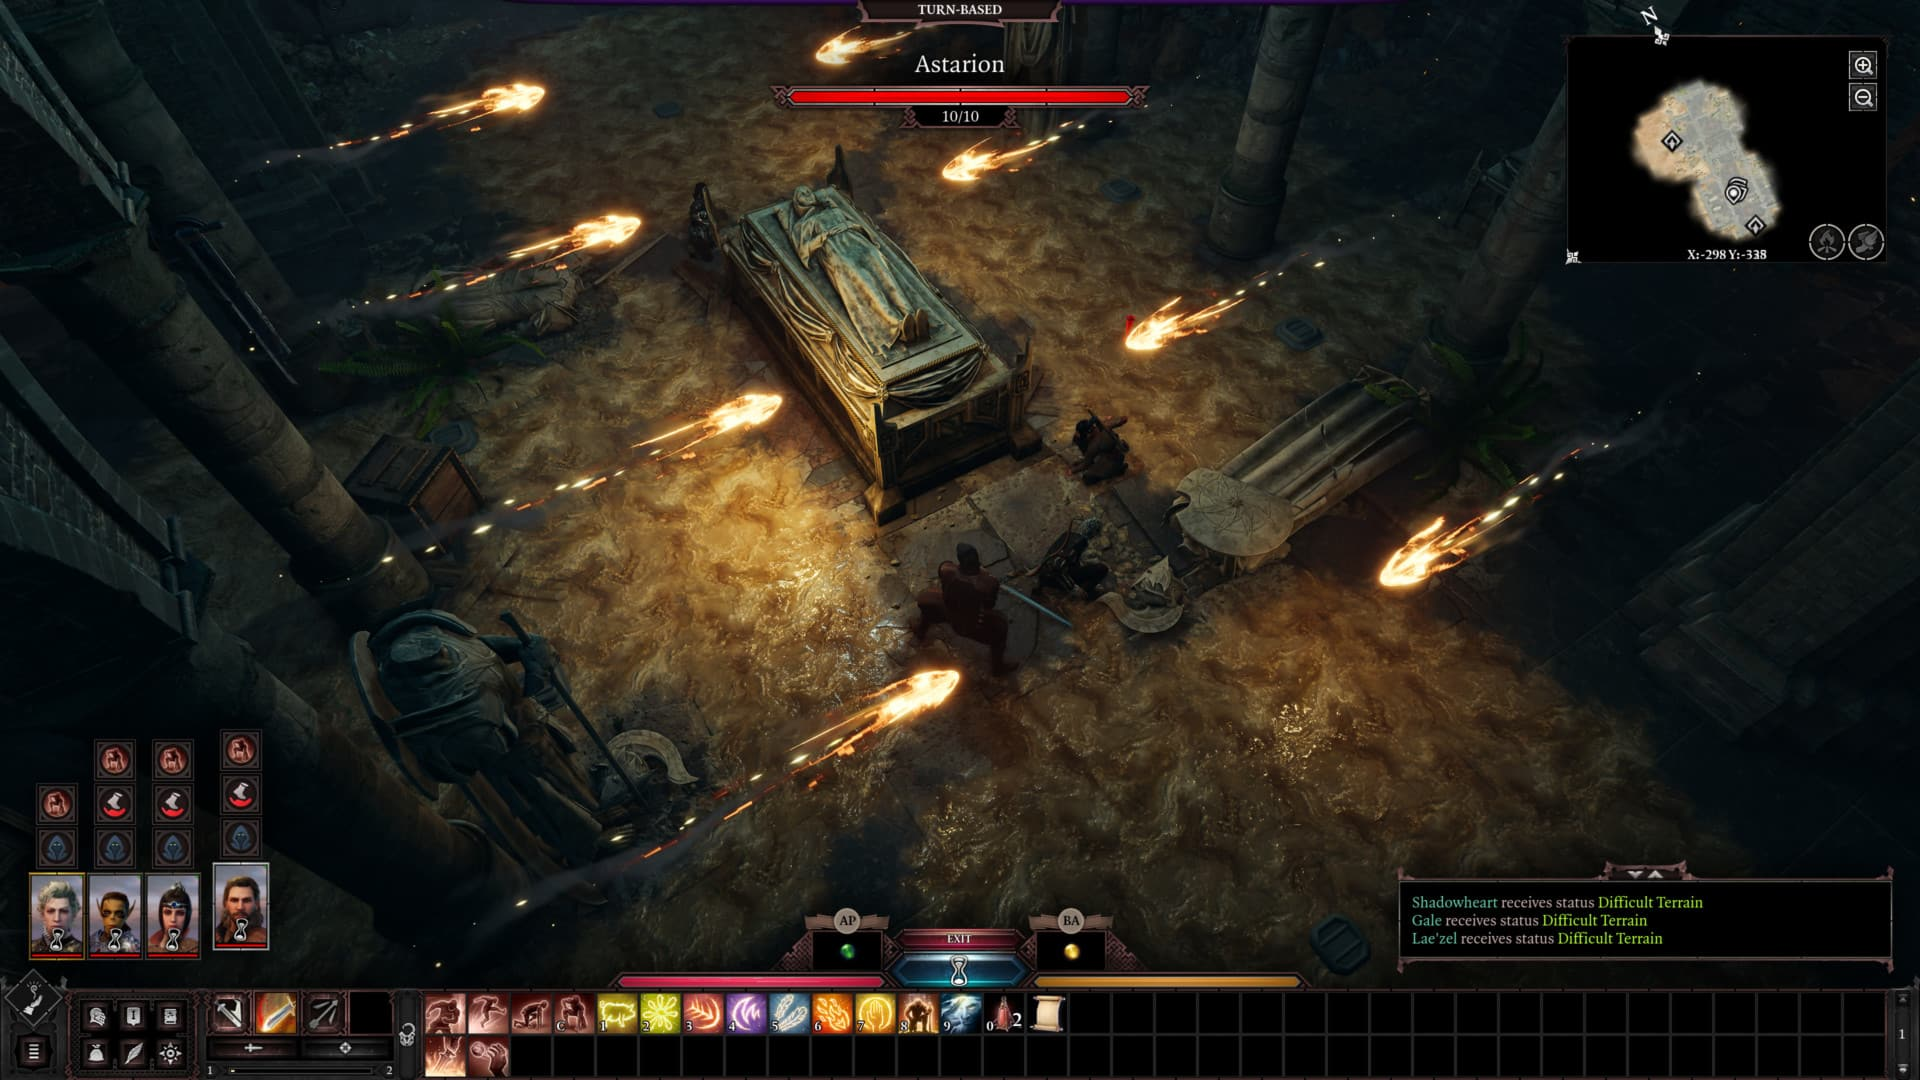 turn-based combat is better than real-time combat with pause for Larian Studios Baldur's Gate 3